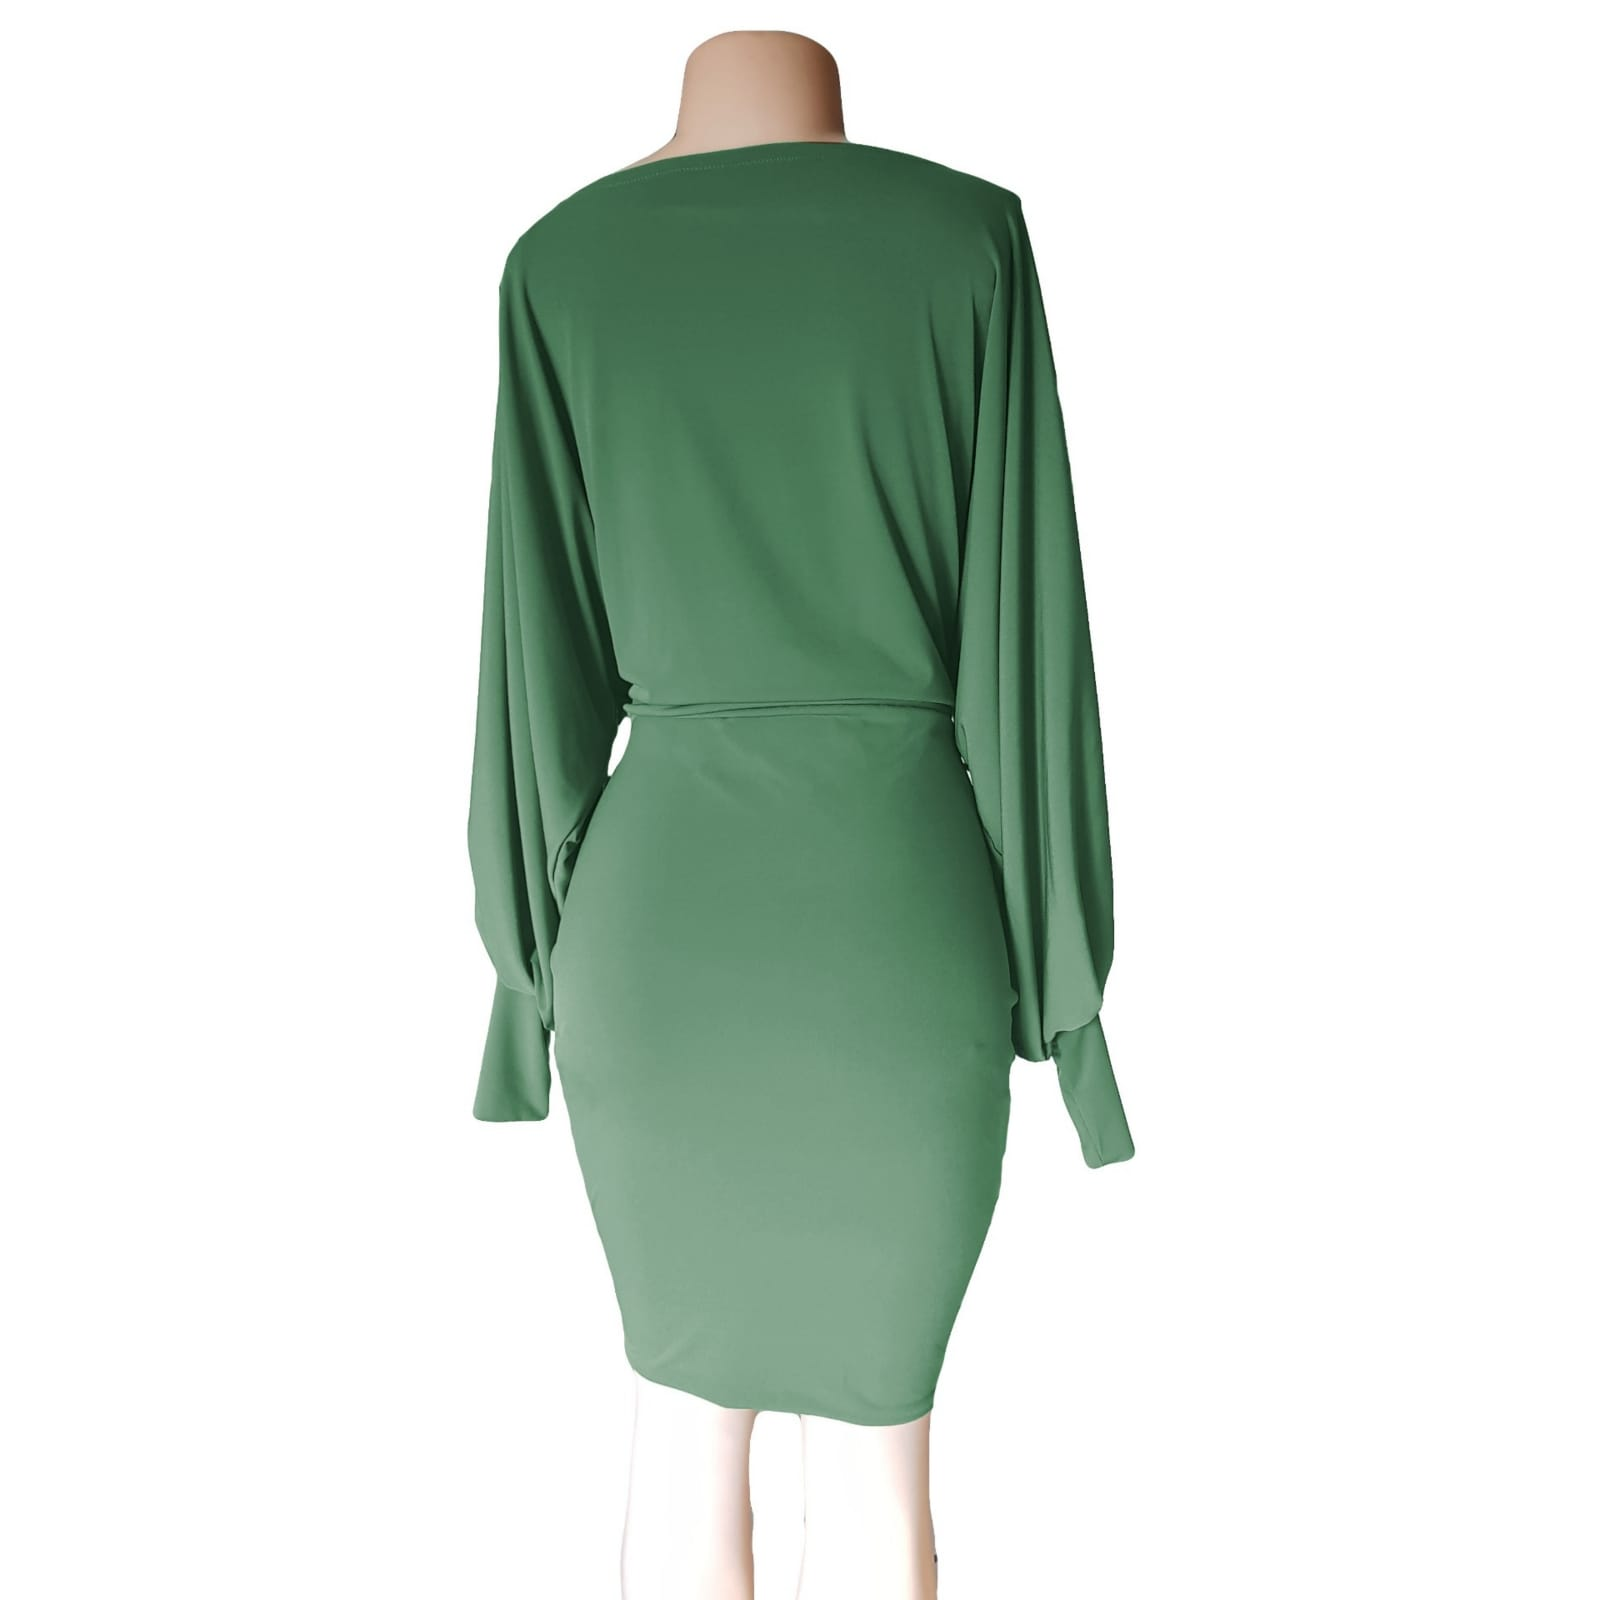 Green knee length smart casual dress 6 green knee length smart casual dress with long bounce sleeves and bodice with a fitted bottom skirt